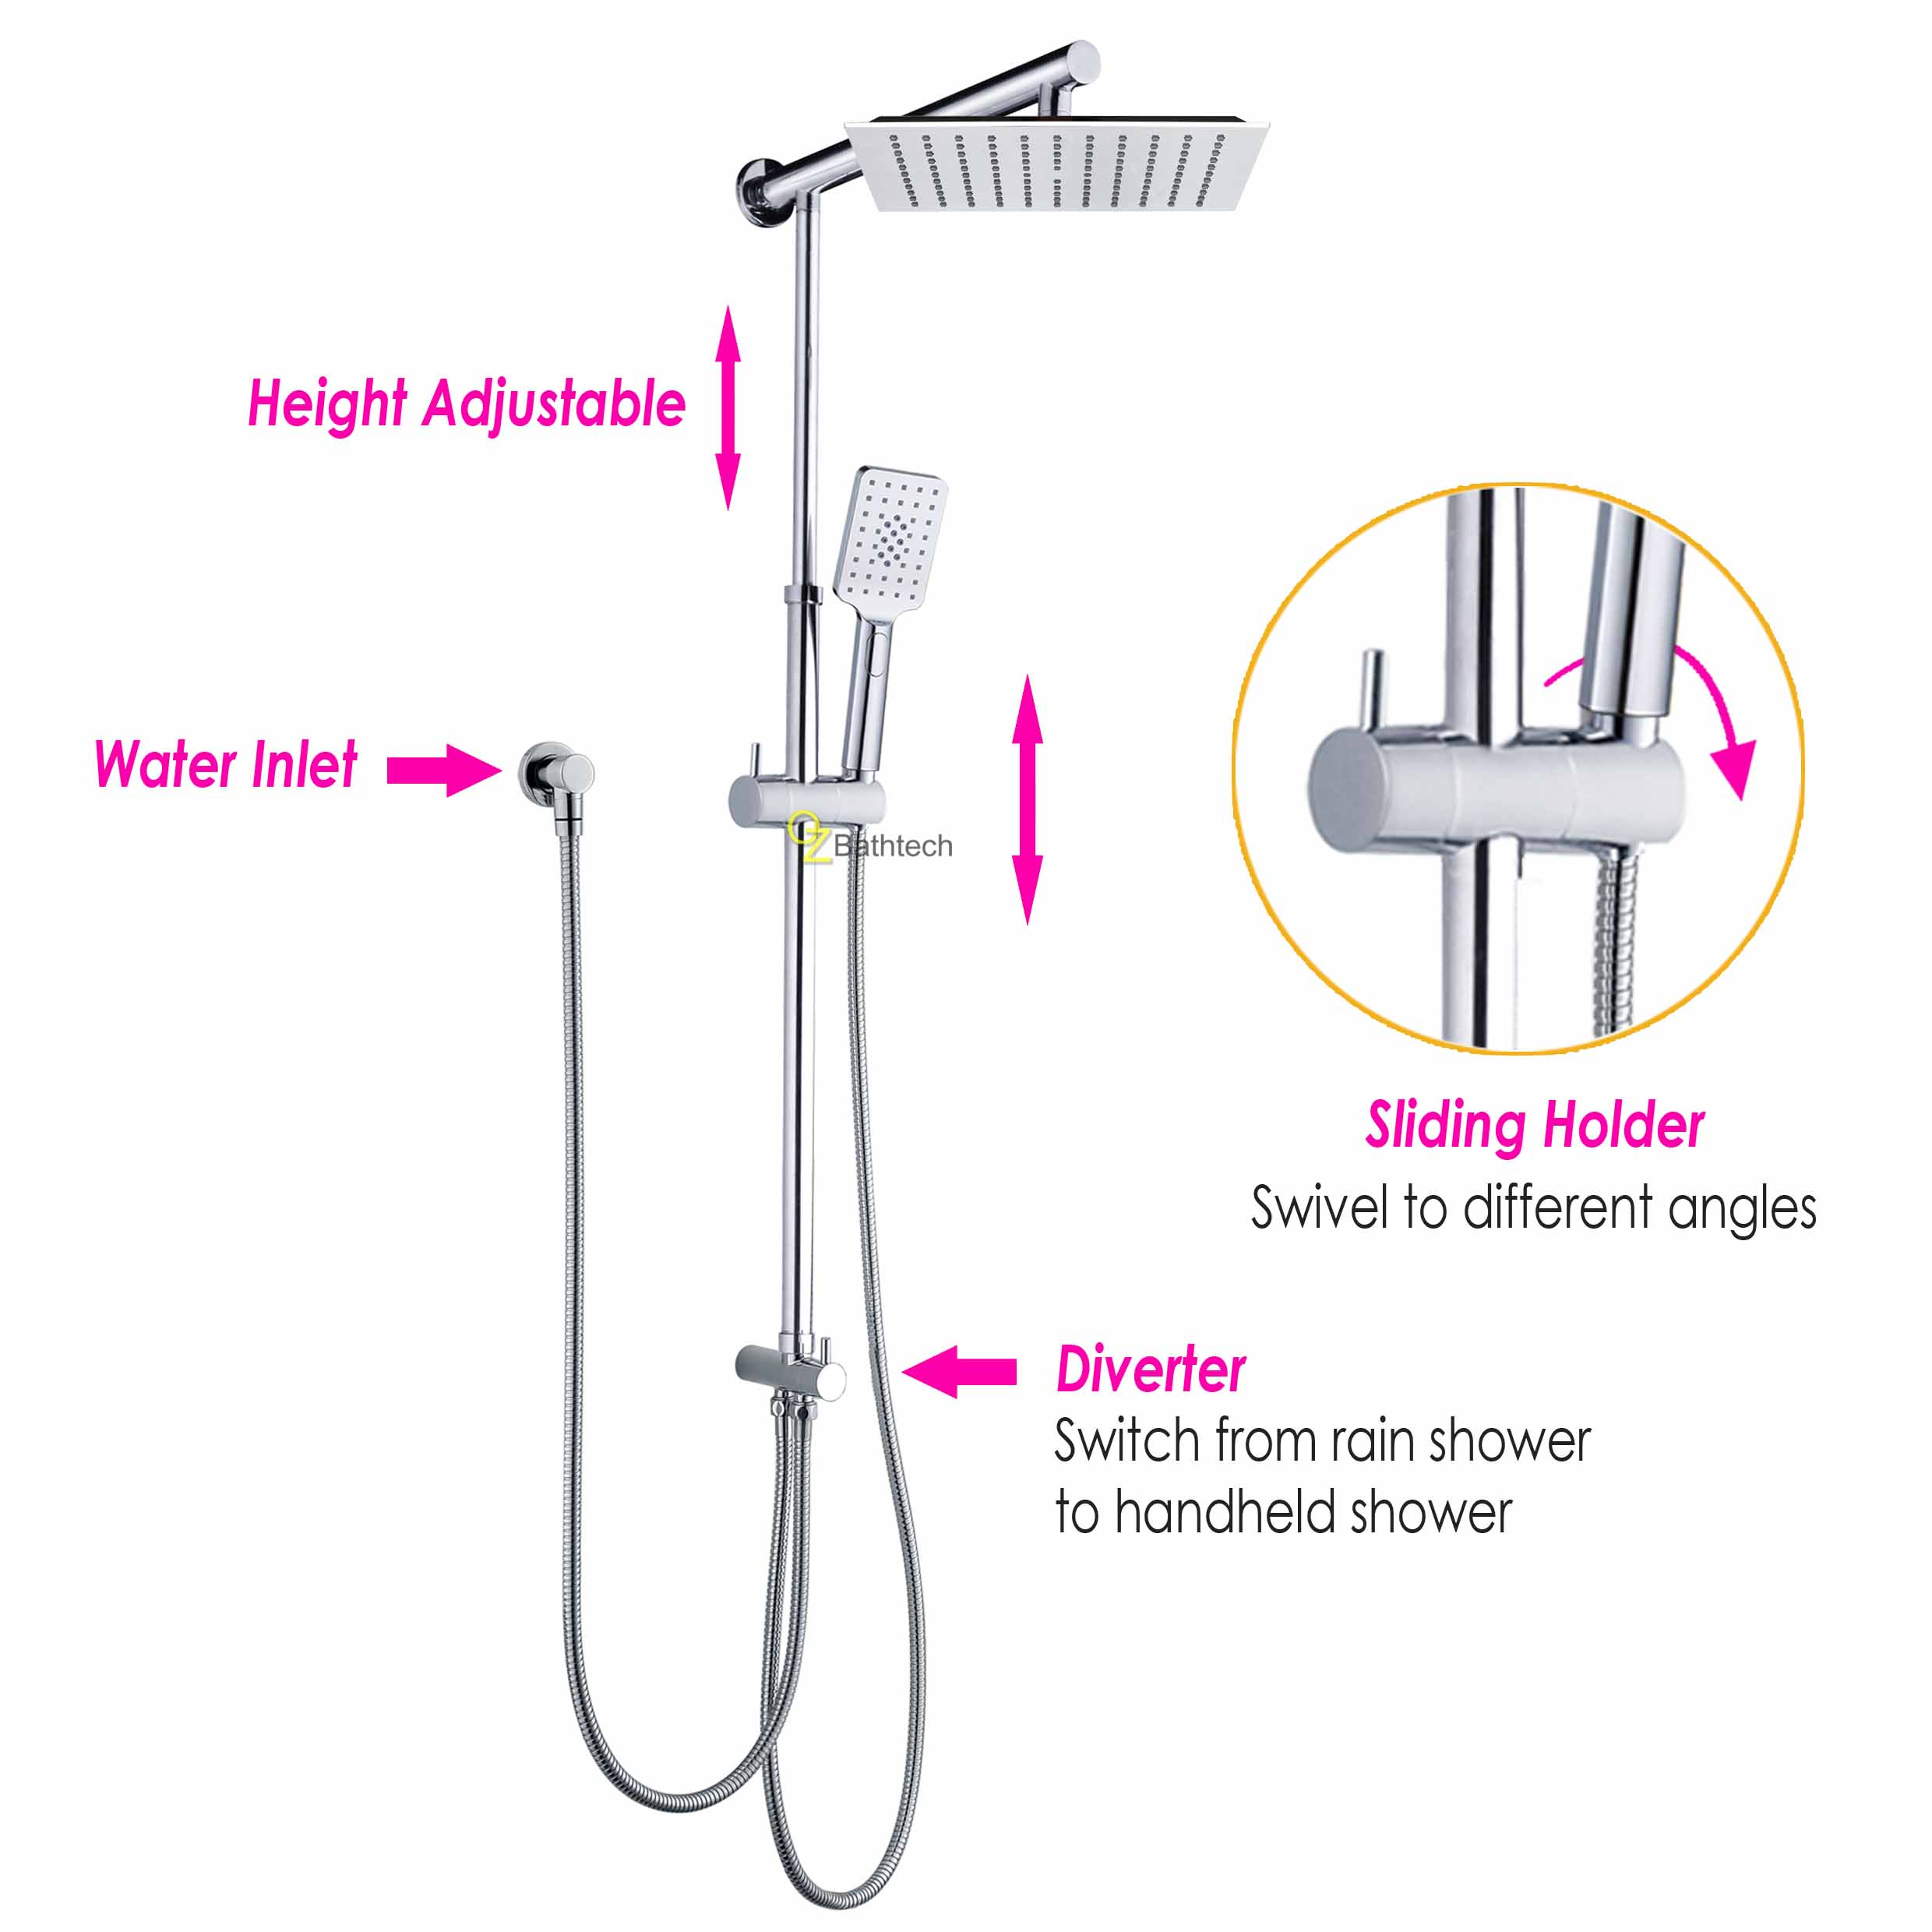 Details About Wels Square 10 Rain Shower Head Rose 3 Mode Handheld Sliding Rail Wall Arm Set